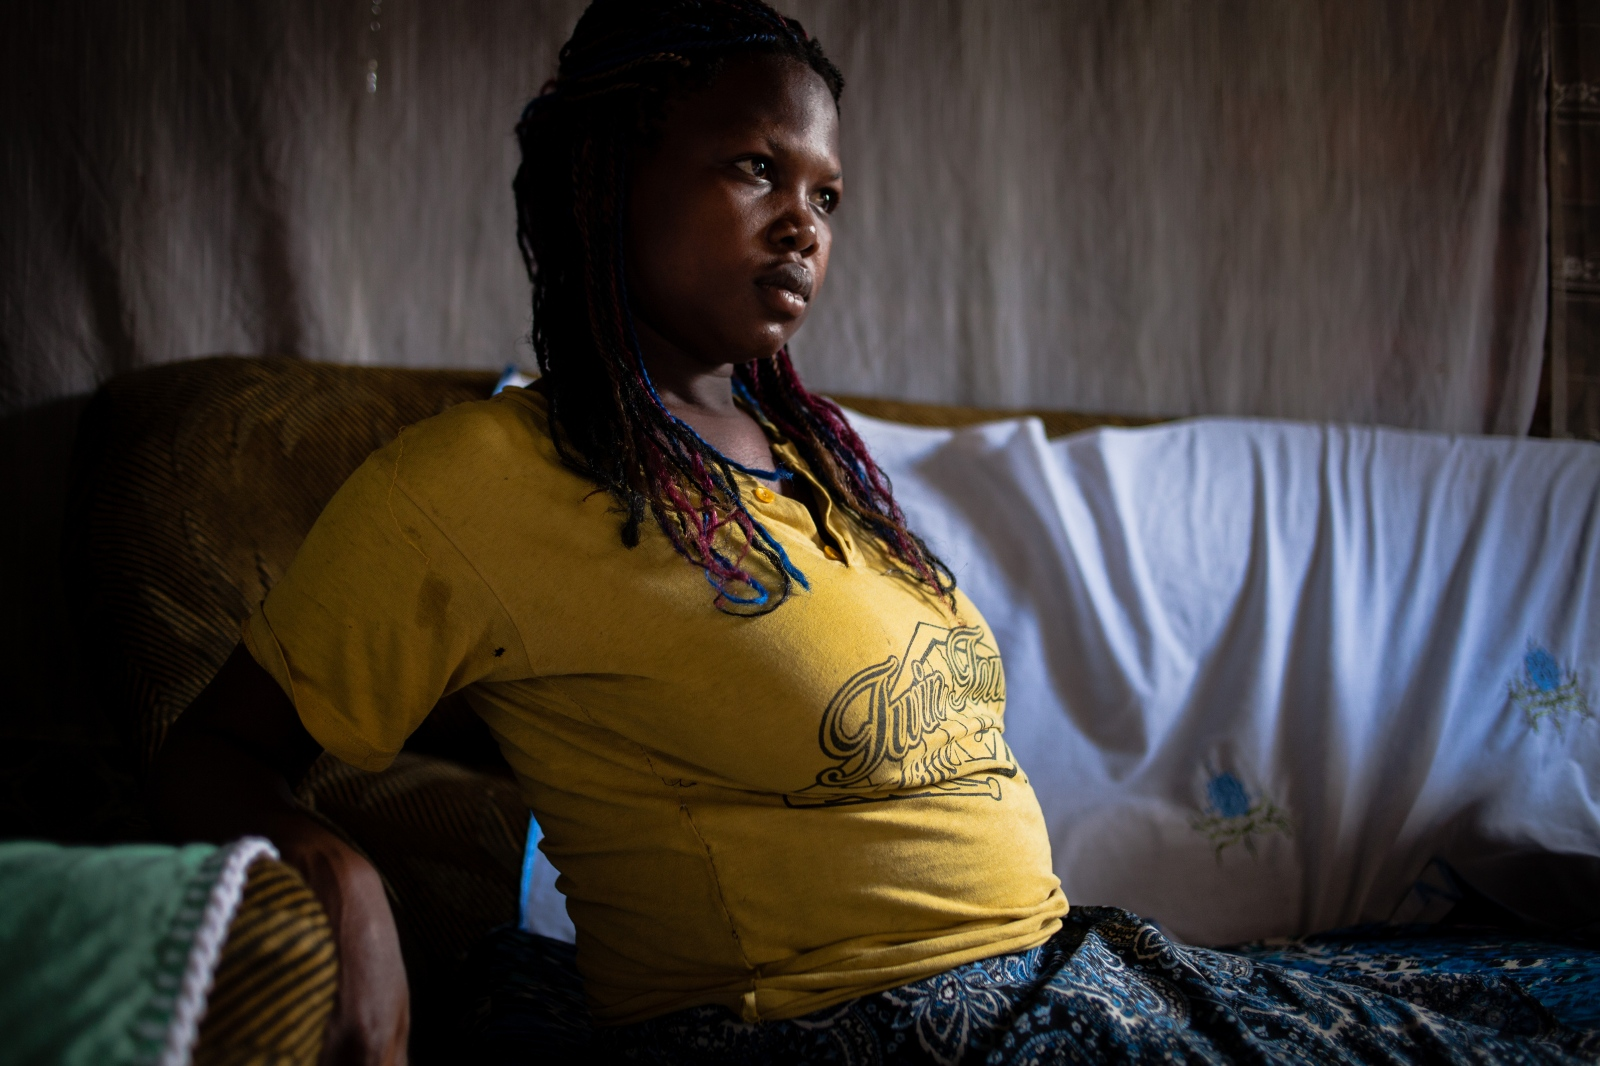 A pregnant woman relaxes in the TBA's house after a check-up in Bududa District, Uganda. Women visit the TBAs' home as they would a hospital for scheduled appointments.